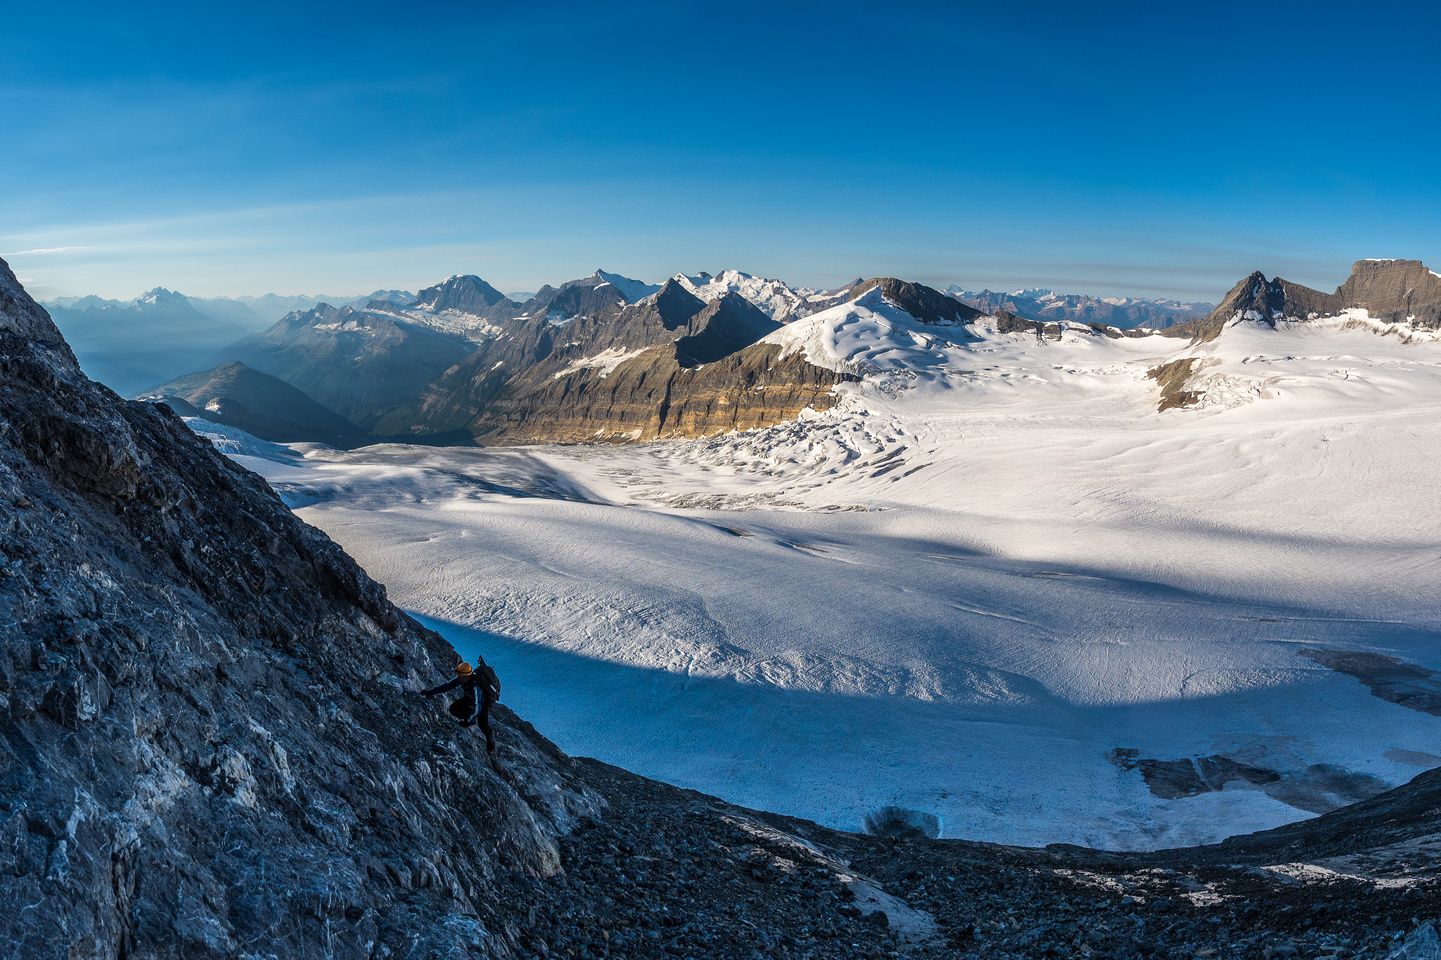 Ferenc climbs up some slabs with the Chess Group across the glacier in the background.